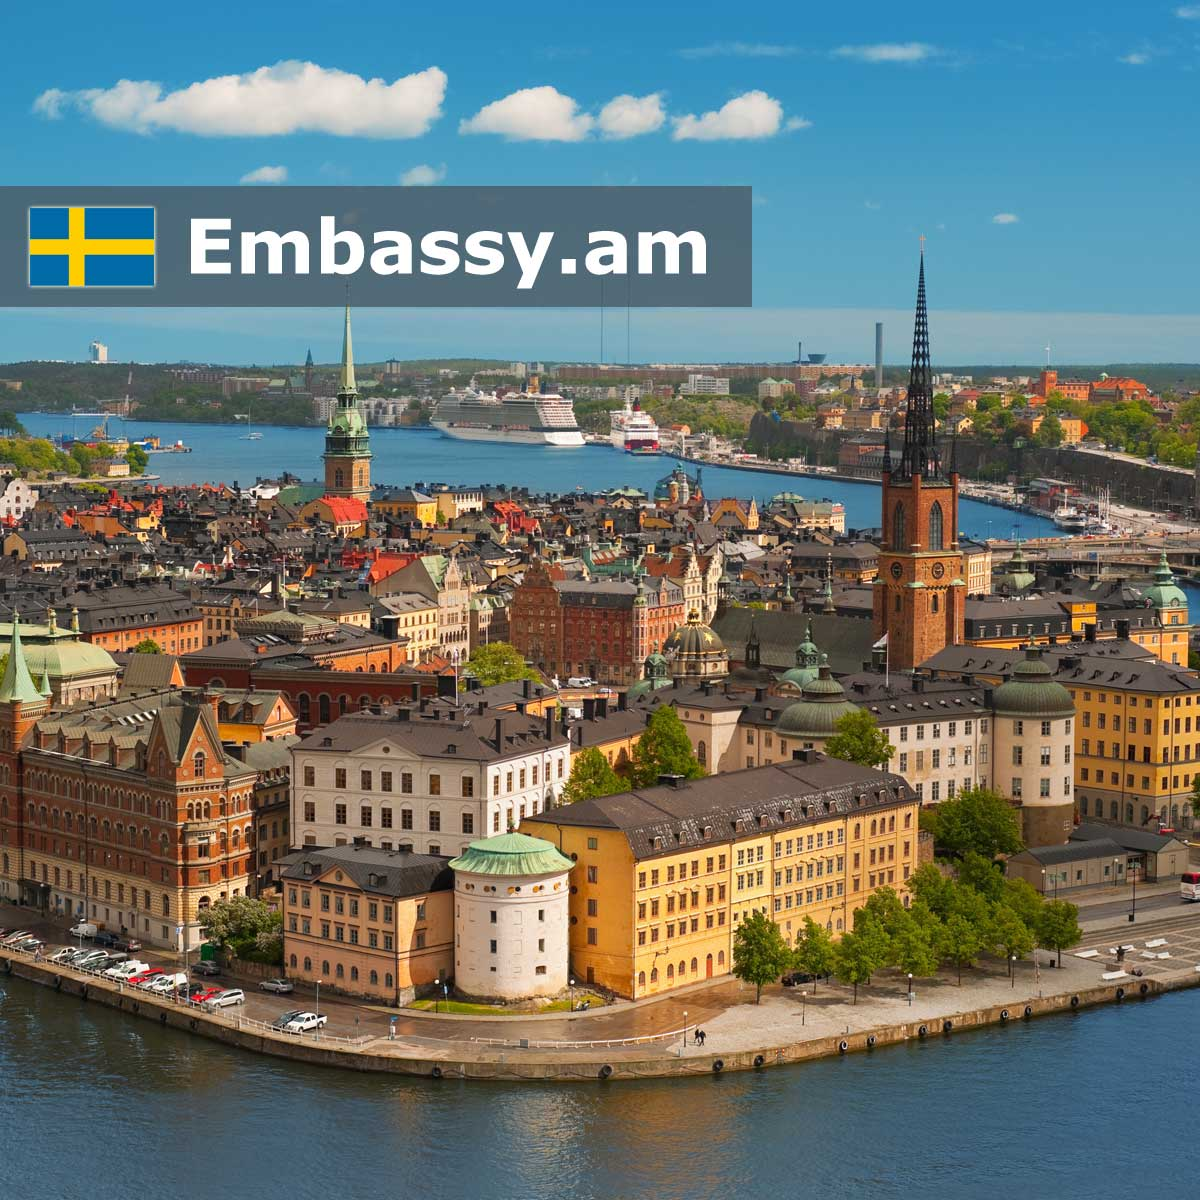 Hotels in Sweden - Embassy.am